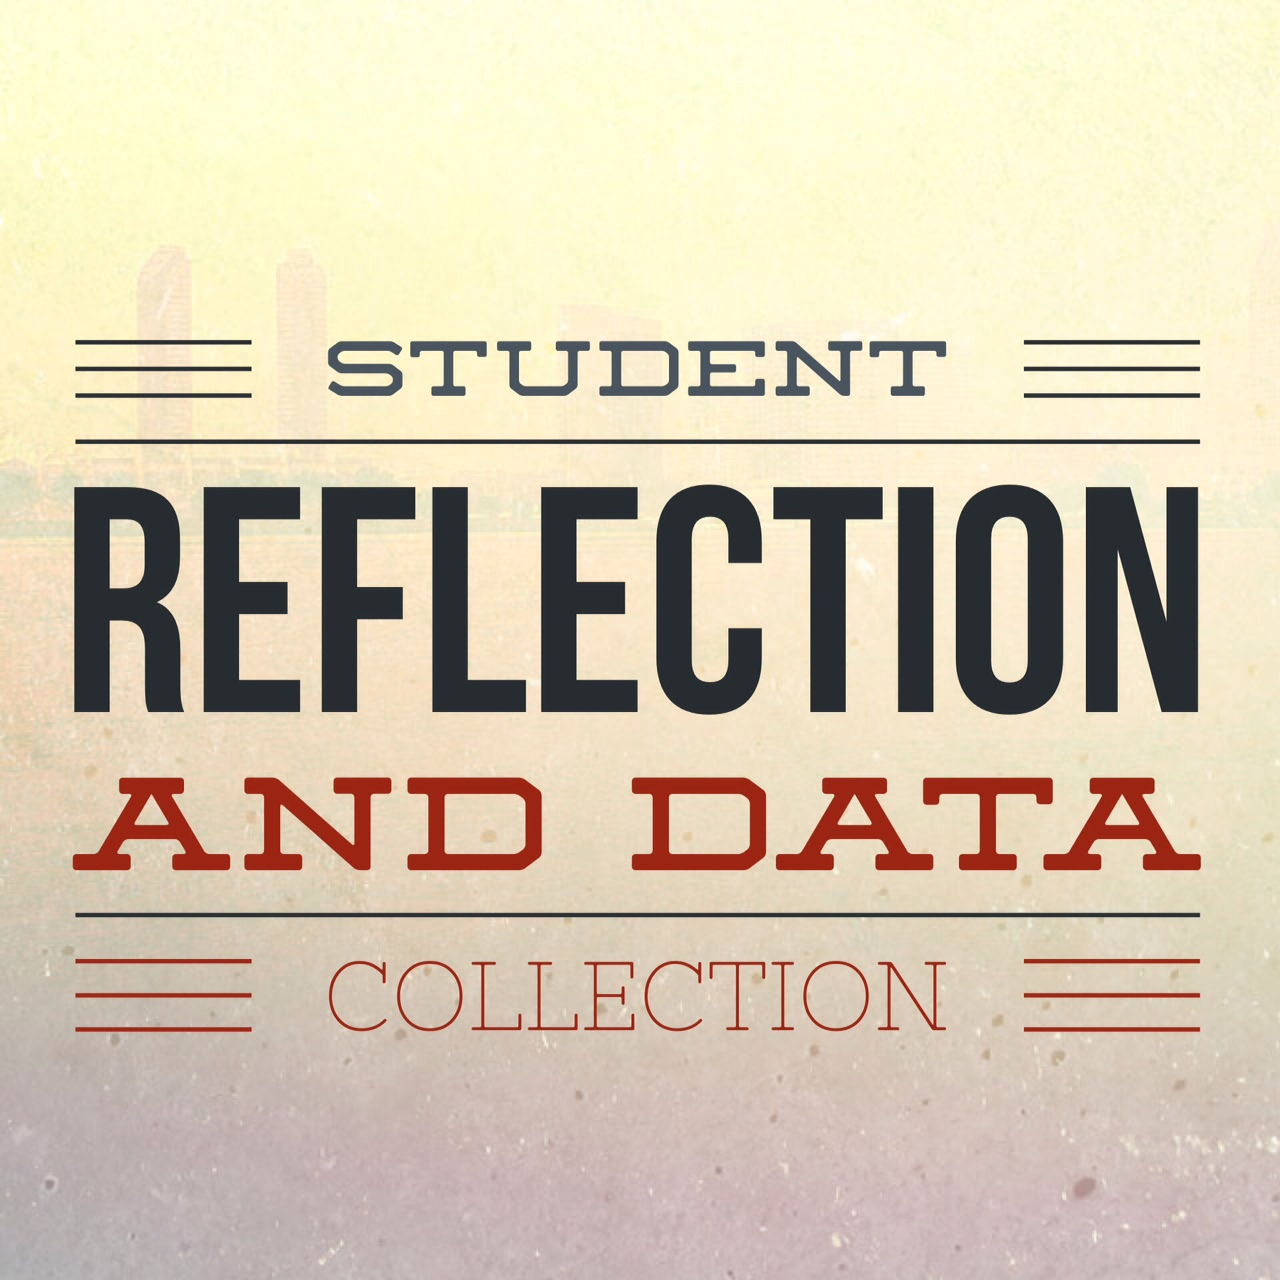 student reflection Student teaching experience reflection over the past four months, my educational philosophy has evolved and strengthened my belief that schools should nurture the whole child was reinforced just as my belief that teachers have an unimaginable influence over their students was.